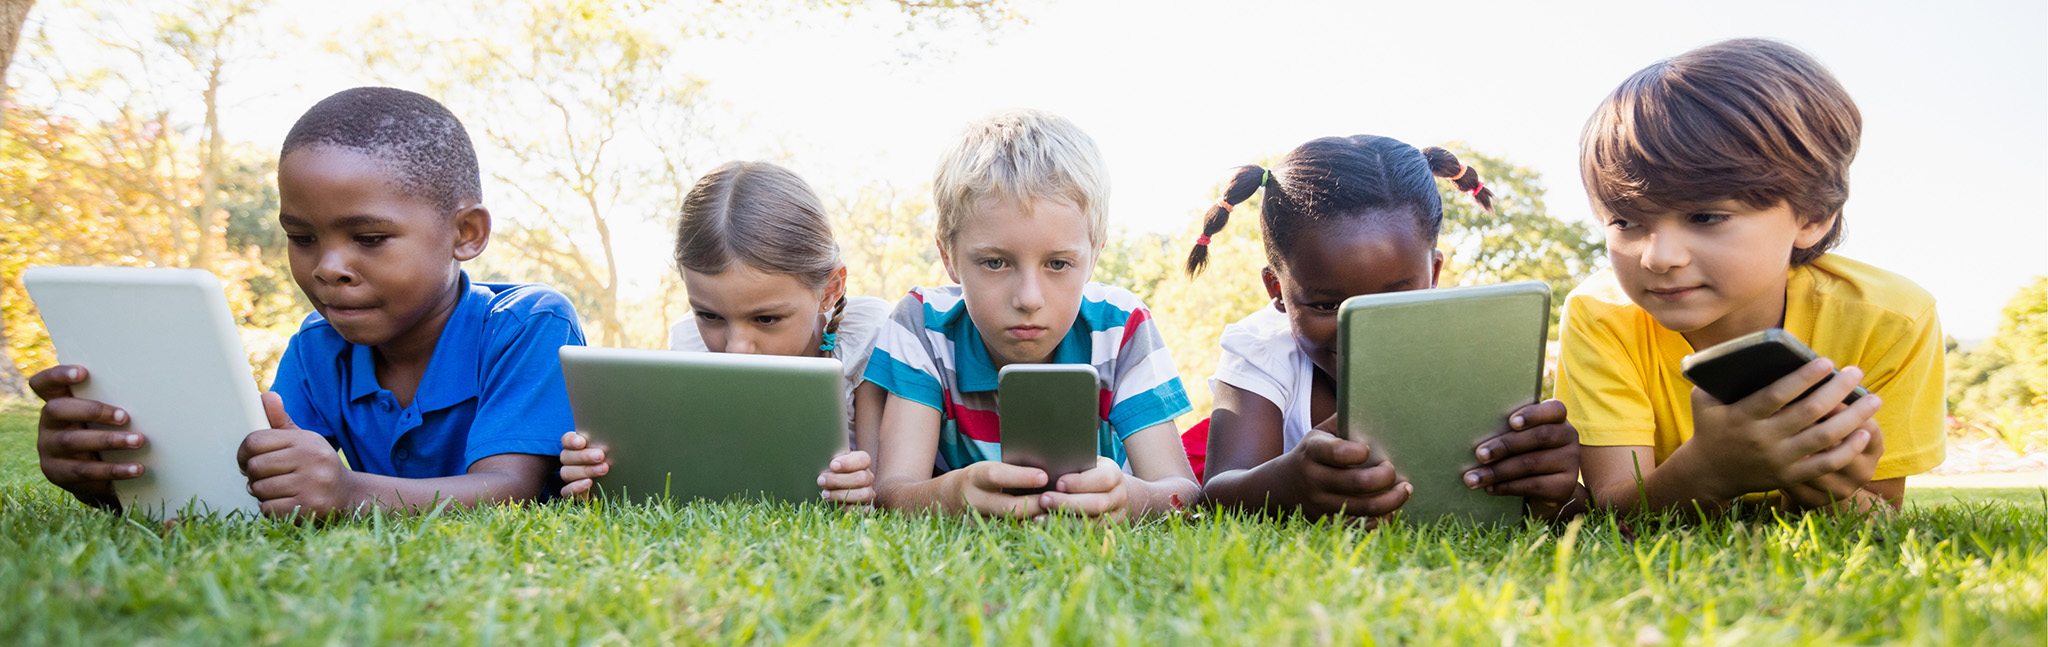 5 kids with technology on grassy lawn